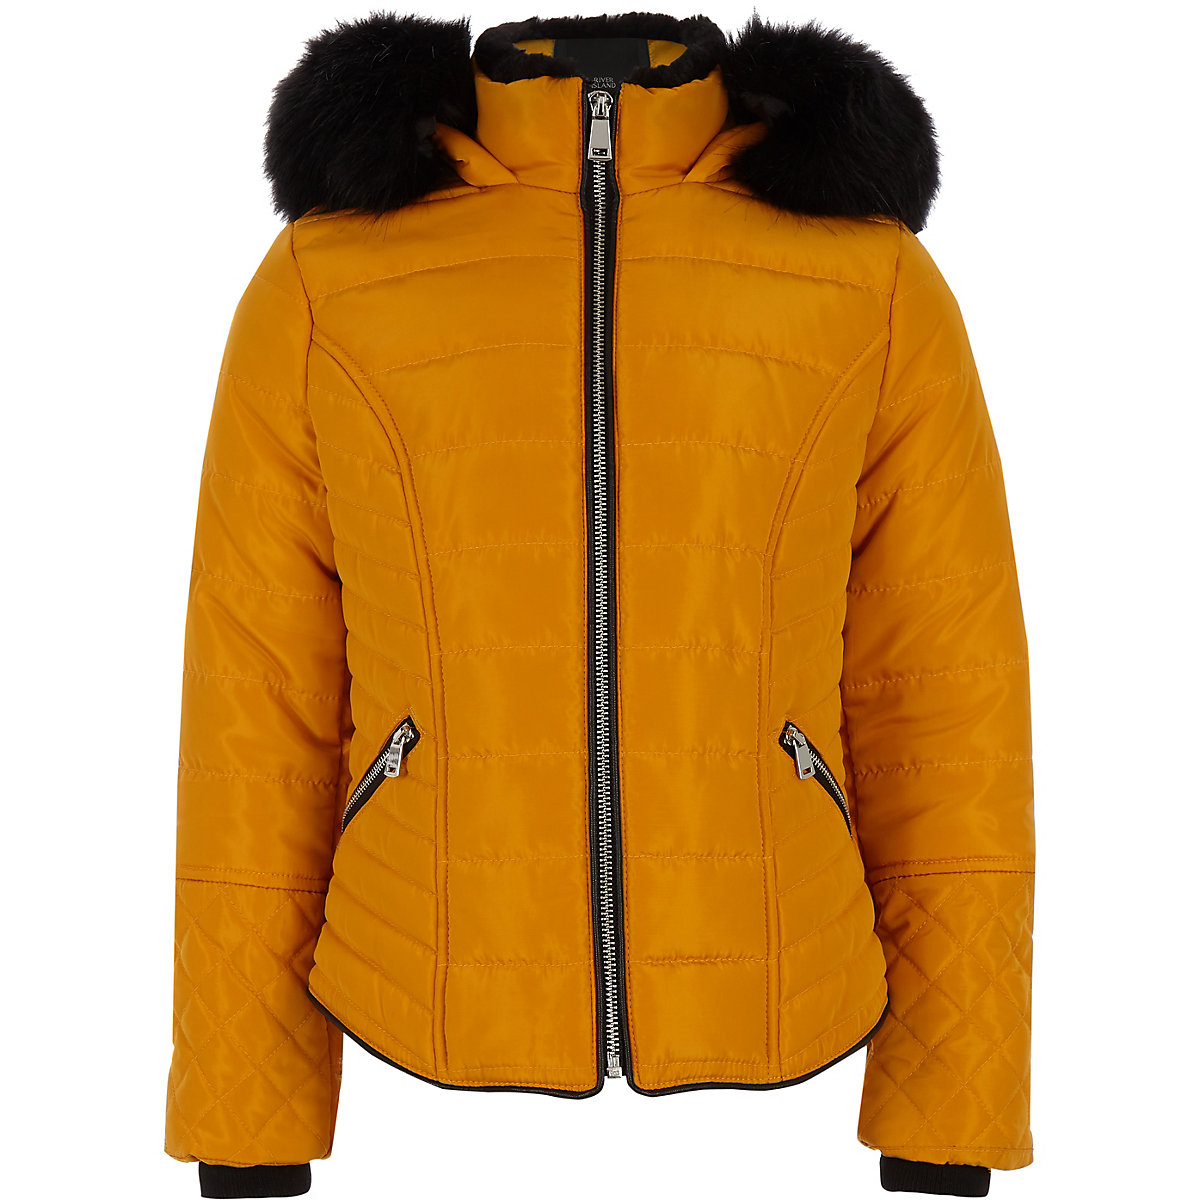 2019 authentic provide plenty of separation shoes Girls yellow faux fur trim padded coat